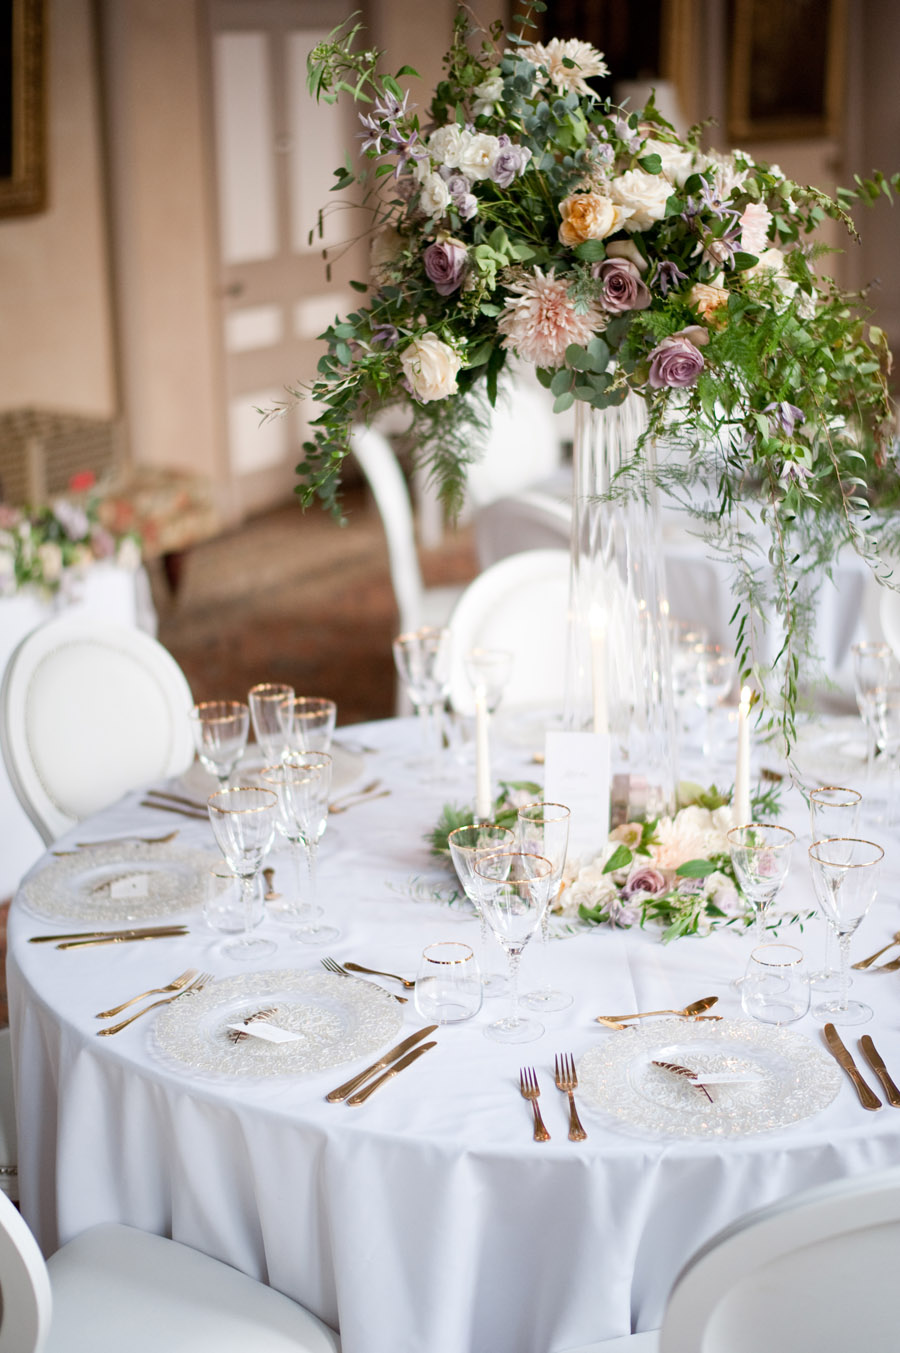 Luxe, modern wedding style ideas by Natalie Hewitt, image credit Rachael Connerton Photography (21)